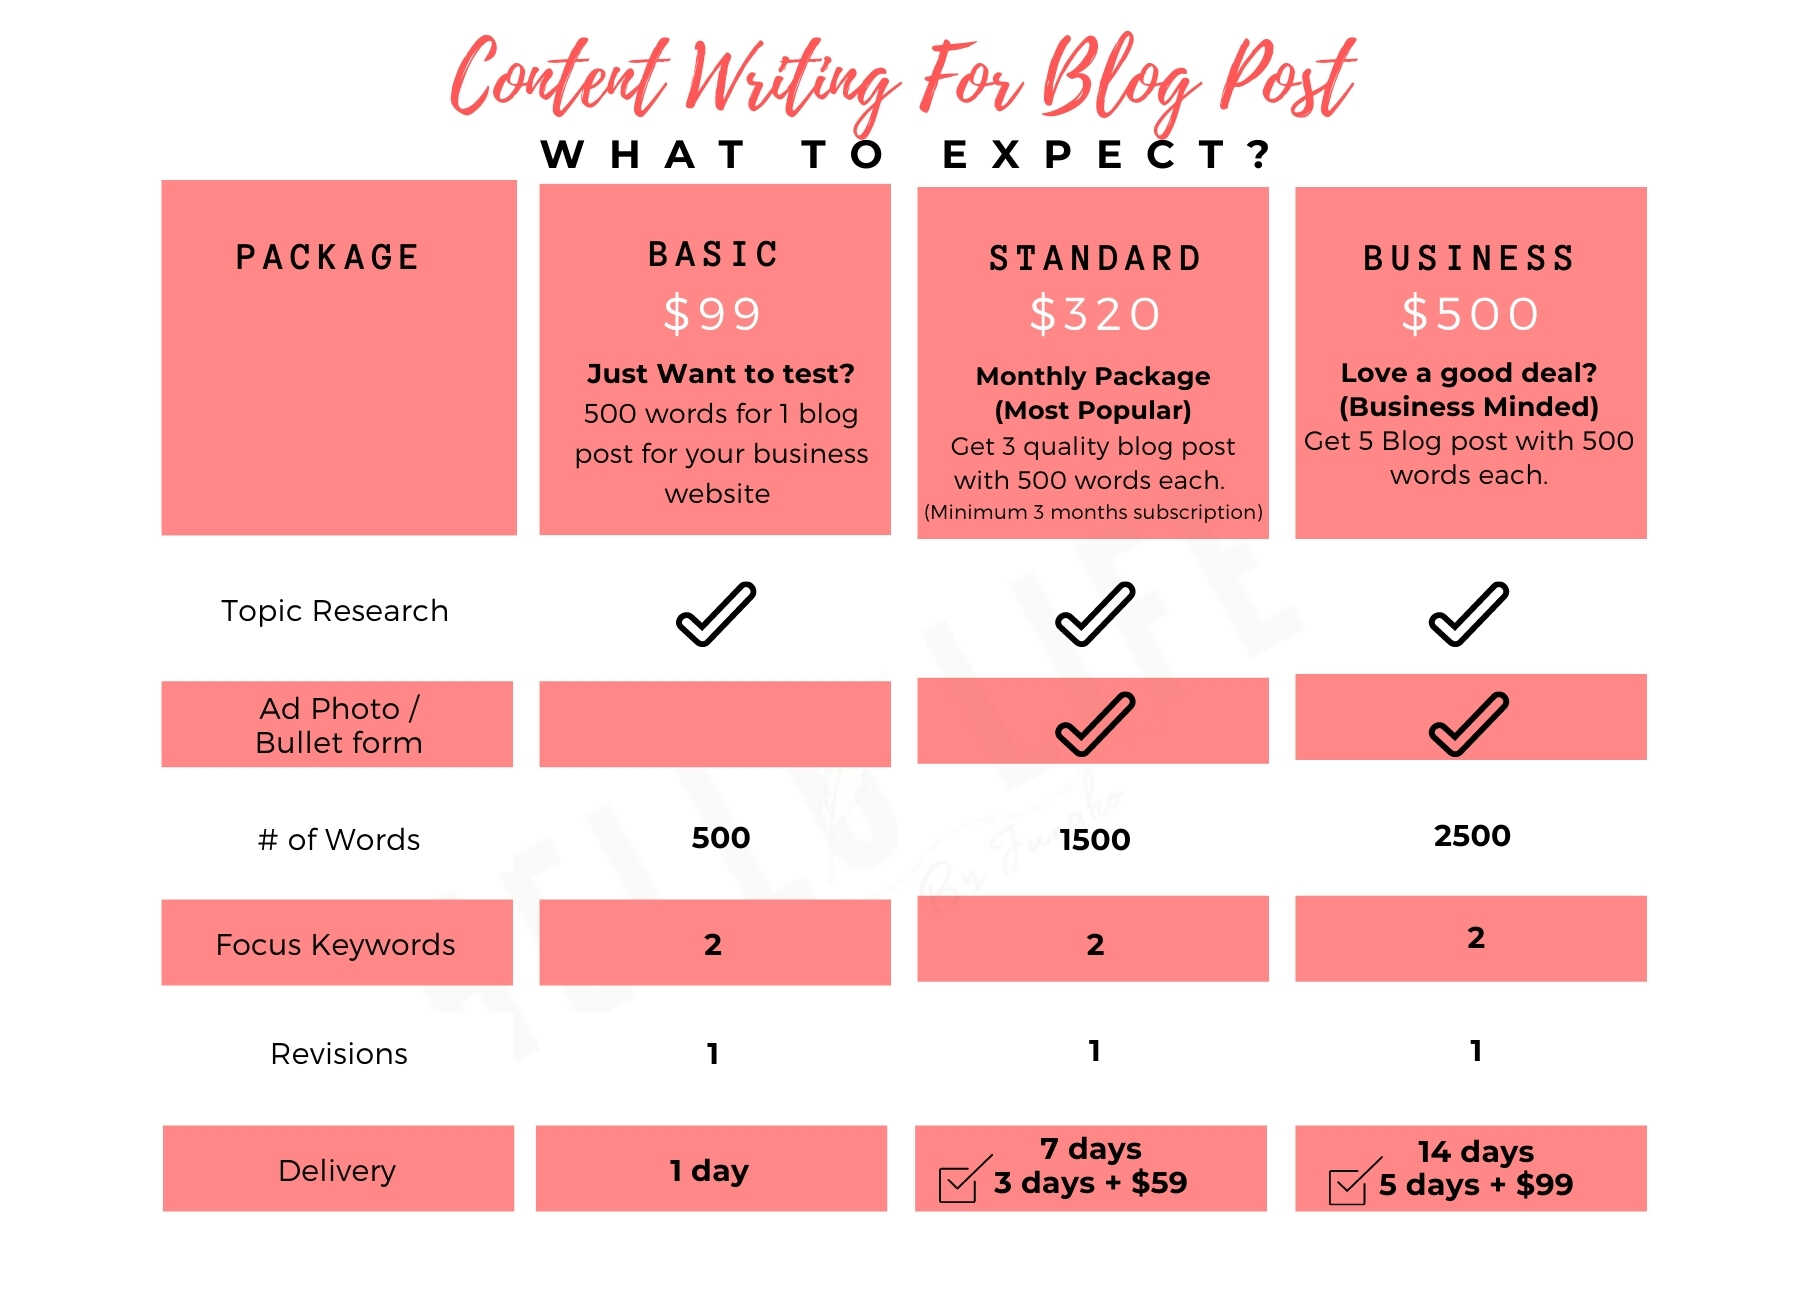 Content Writing - Blog Post